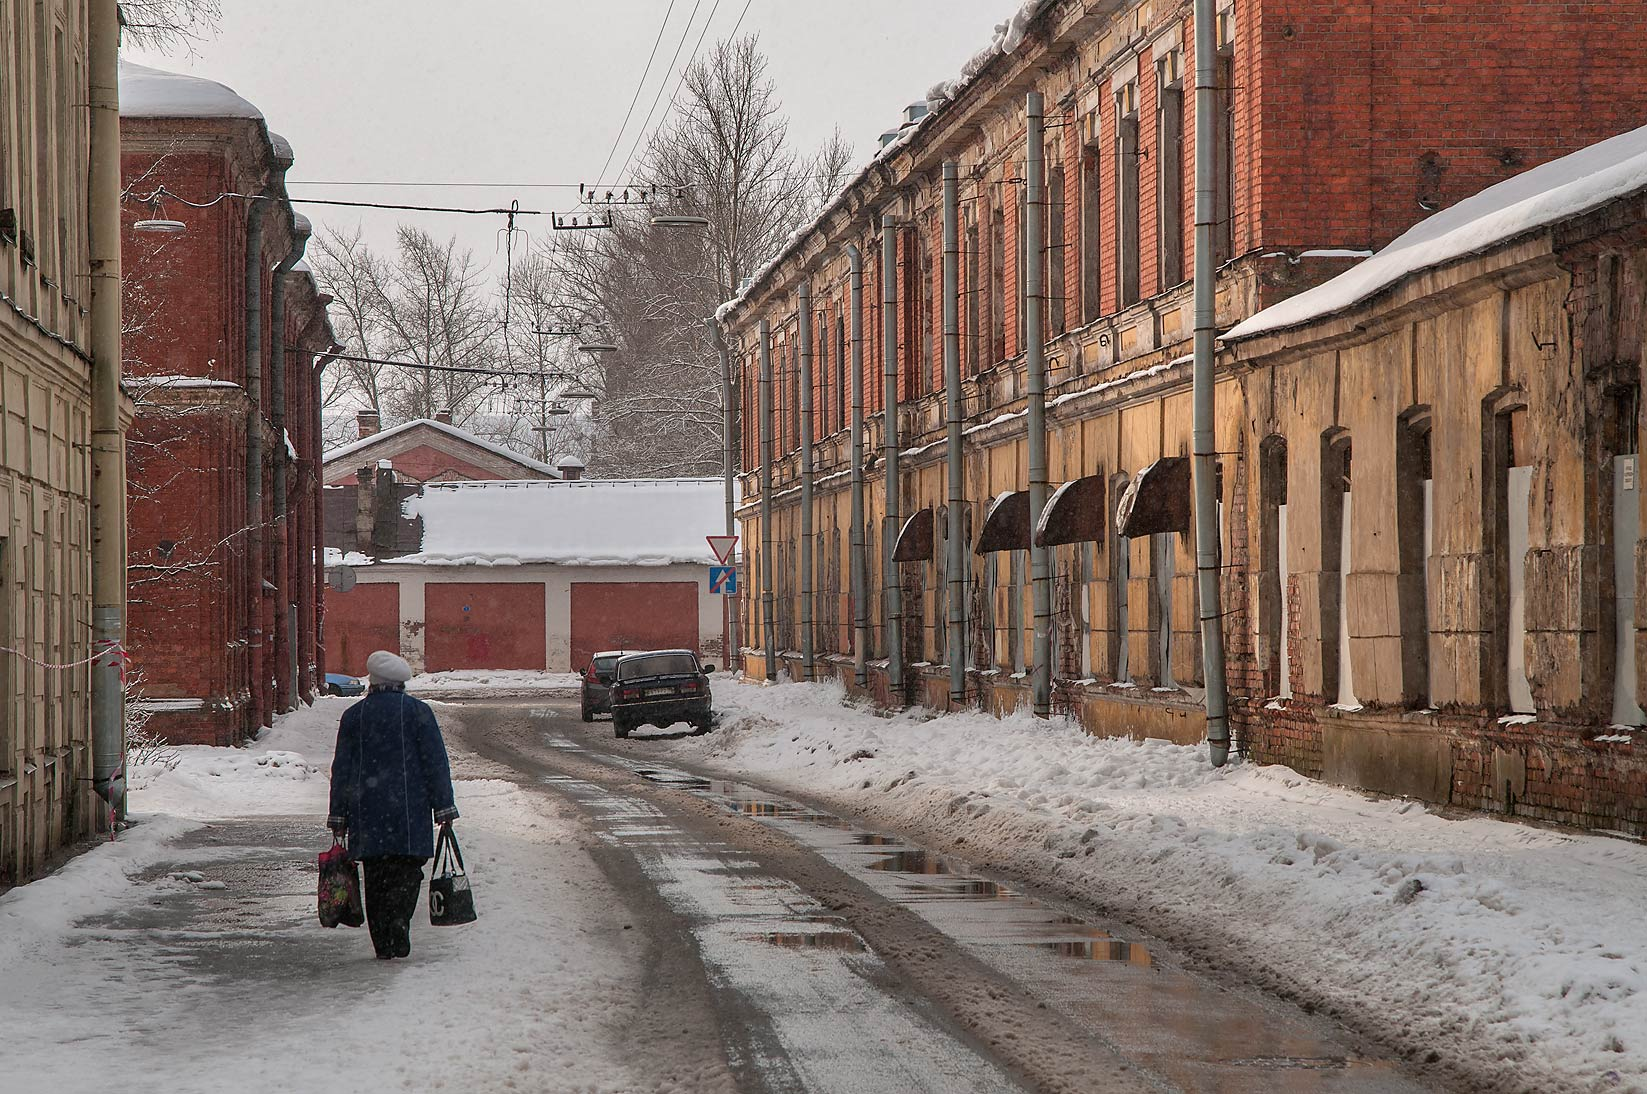 South end of Komsomola St. in snow. Kronstadt (part of St.Petersburg), Russia